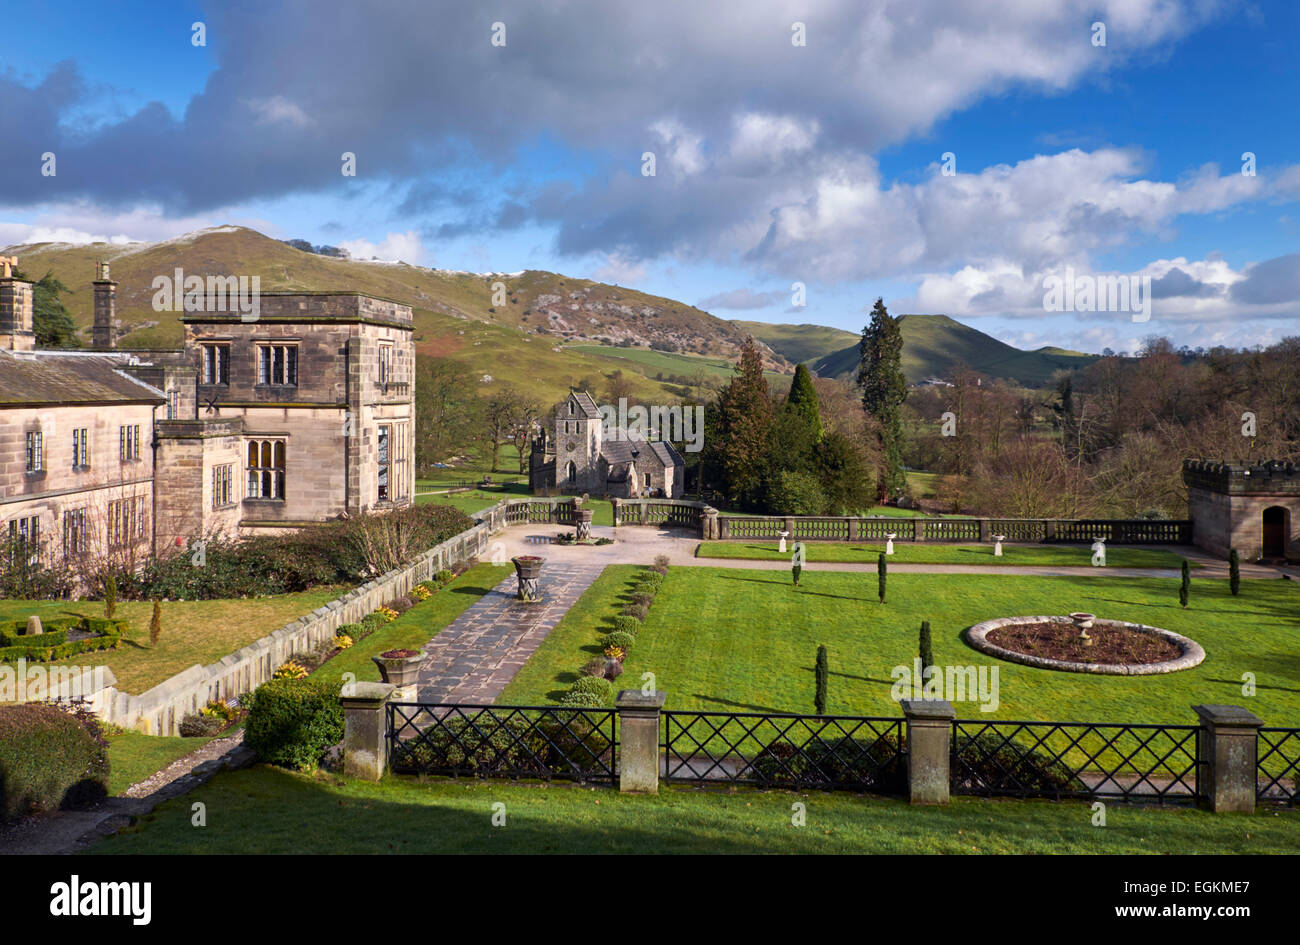 Ilam Hall Youth Hostel and Church of the Holy Cross in Ilam Park with Bunster Hill and Thorpe Cloud in distance. - Stock Image